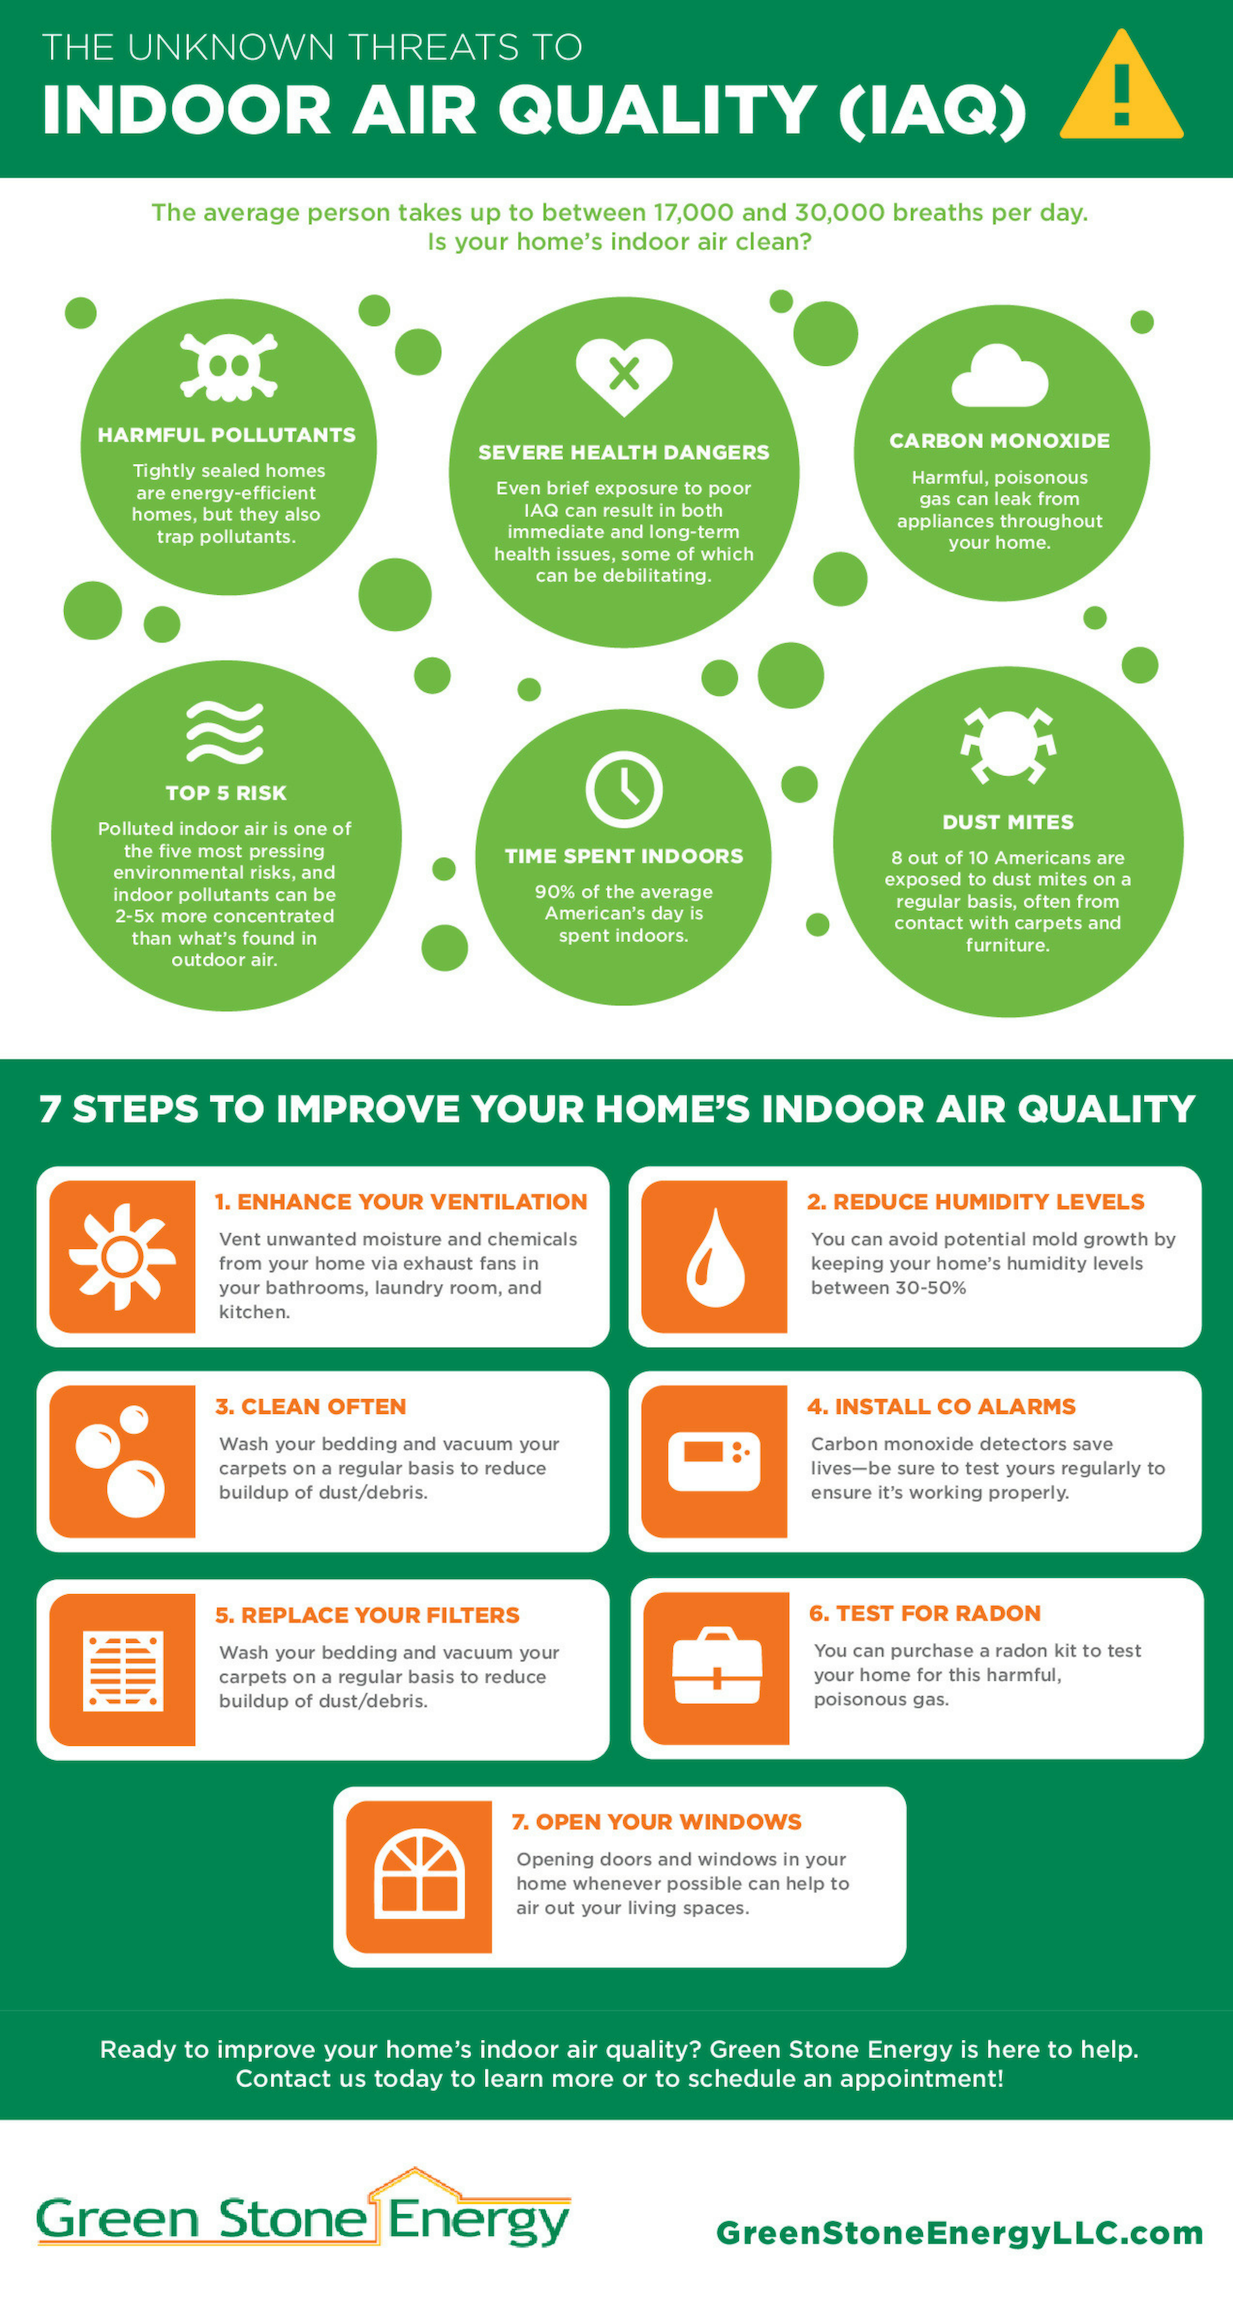 Unknown Threats to Indoor Air Quality Infographic